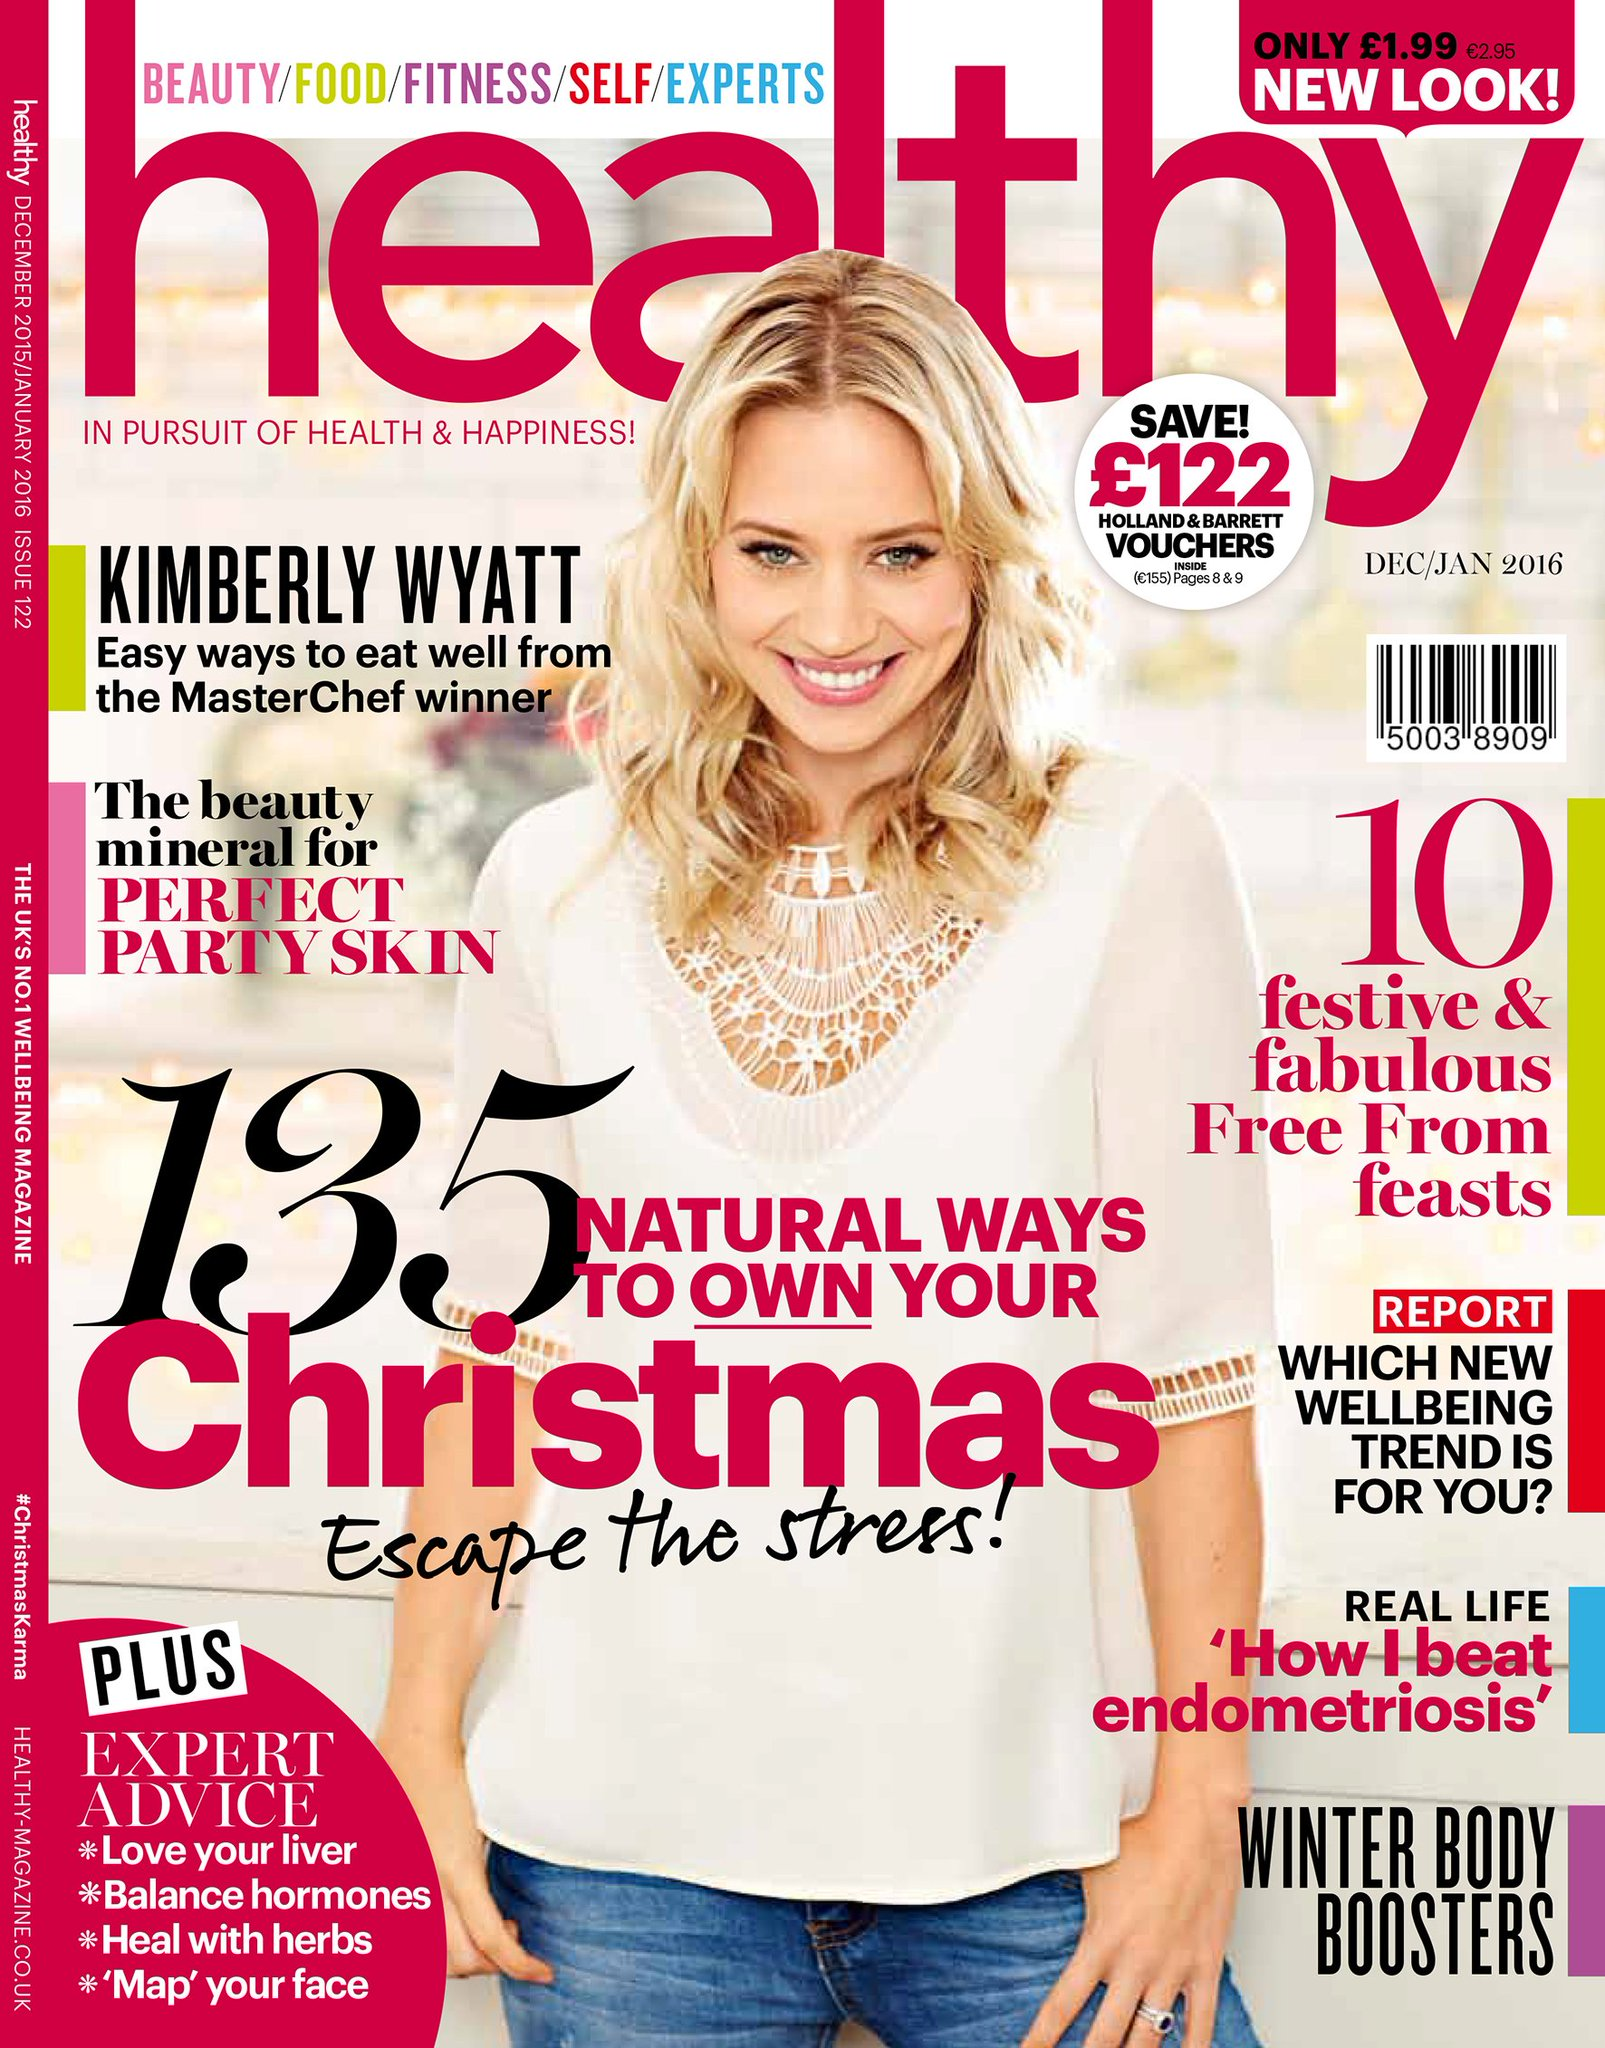 RT @holland_barrett: Pssst... the new look @healthymag featuring @KimberlyKWyatt and a new look of her own is in store from today :) https:…